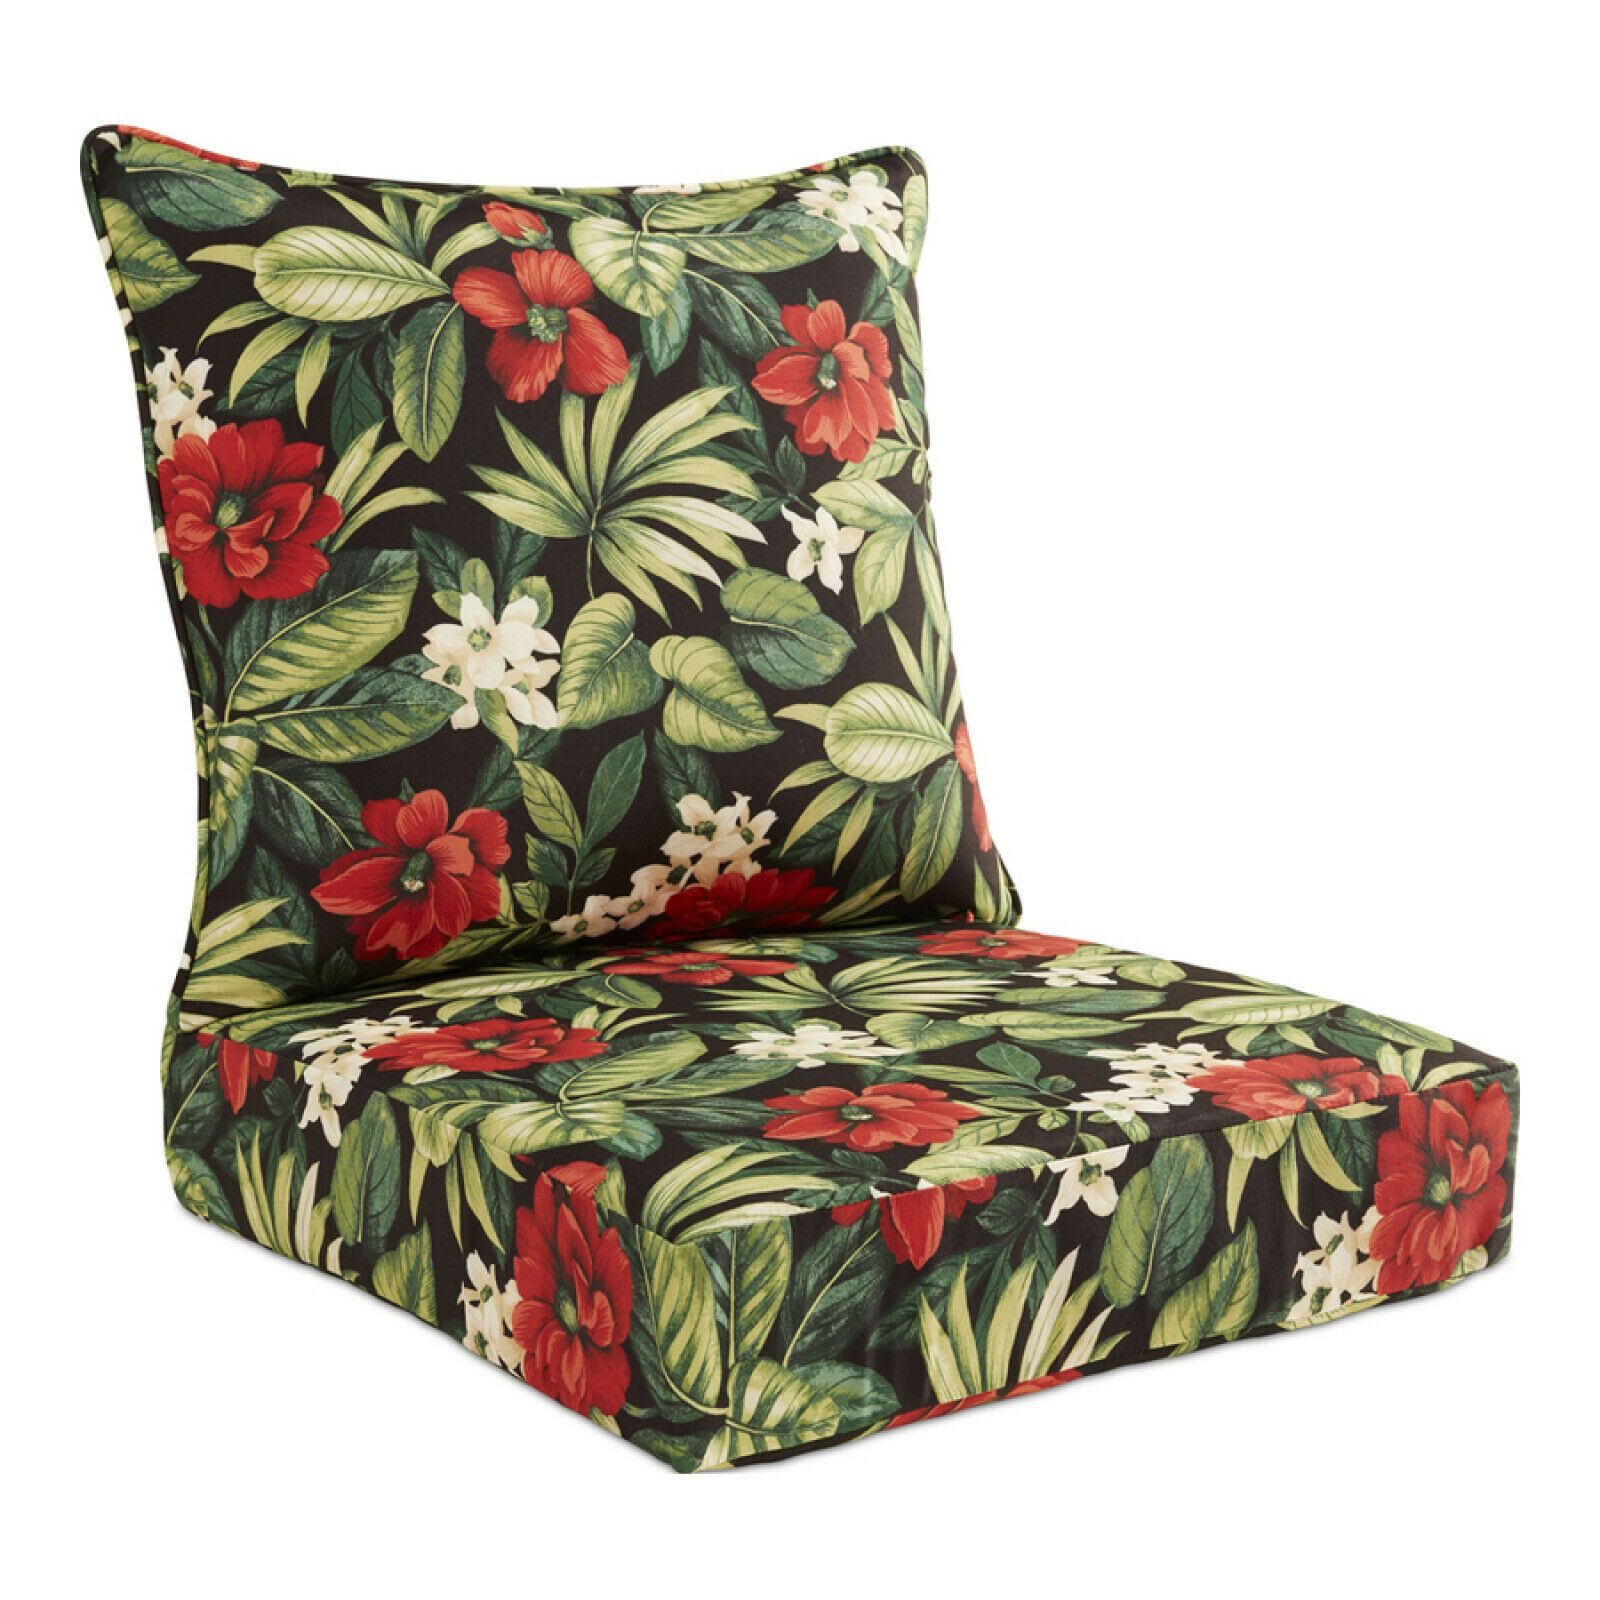 Details About 2 Piece Deep Seat Patio Chair Cushion Polyester